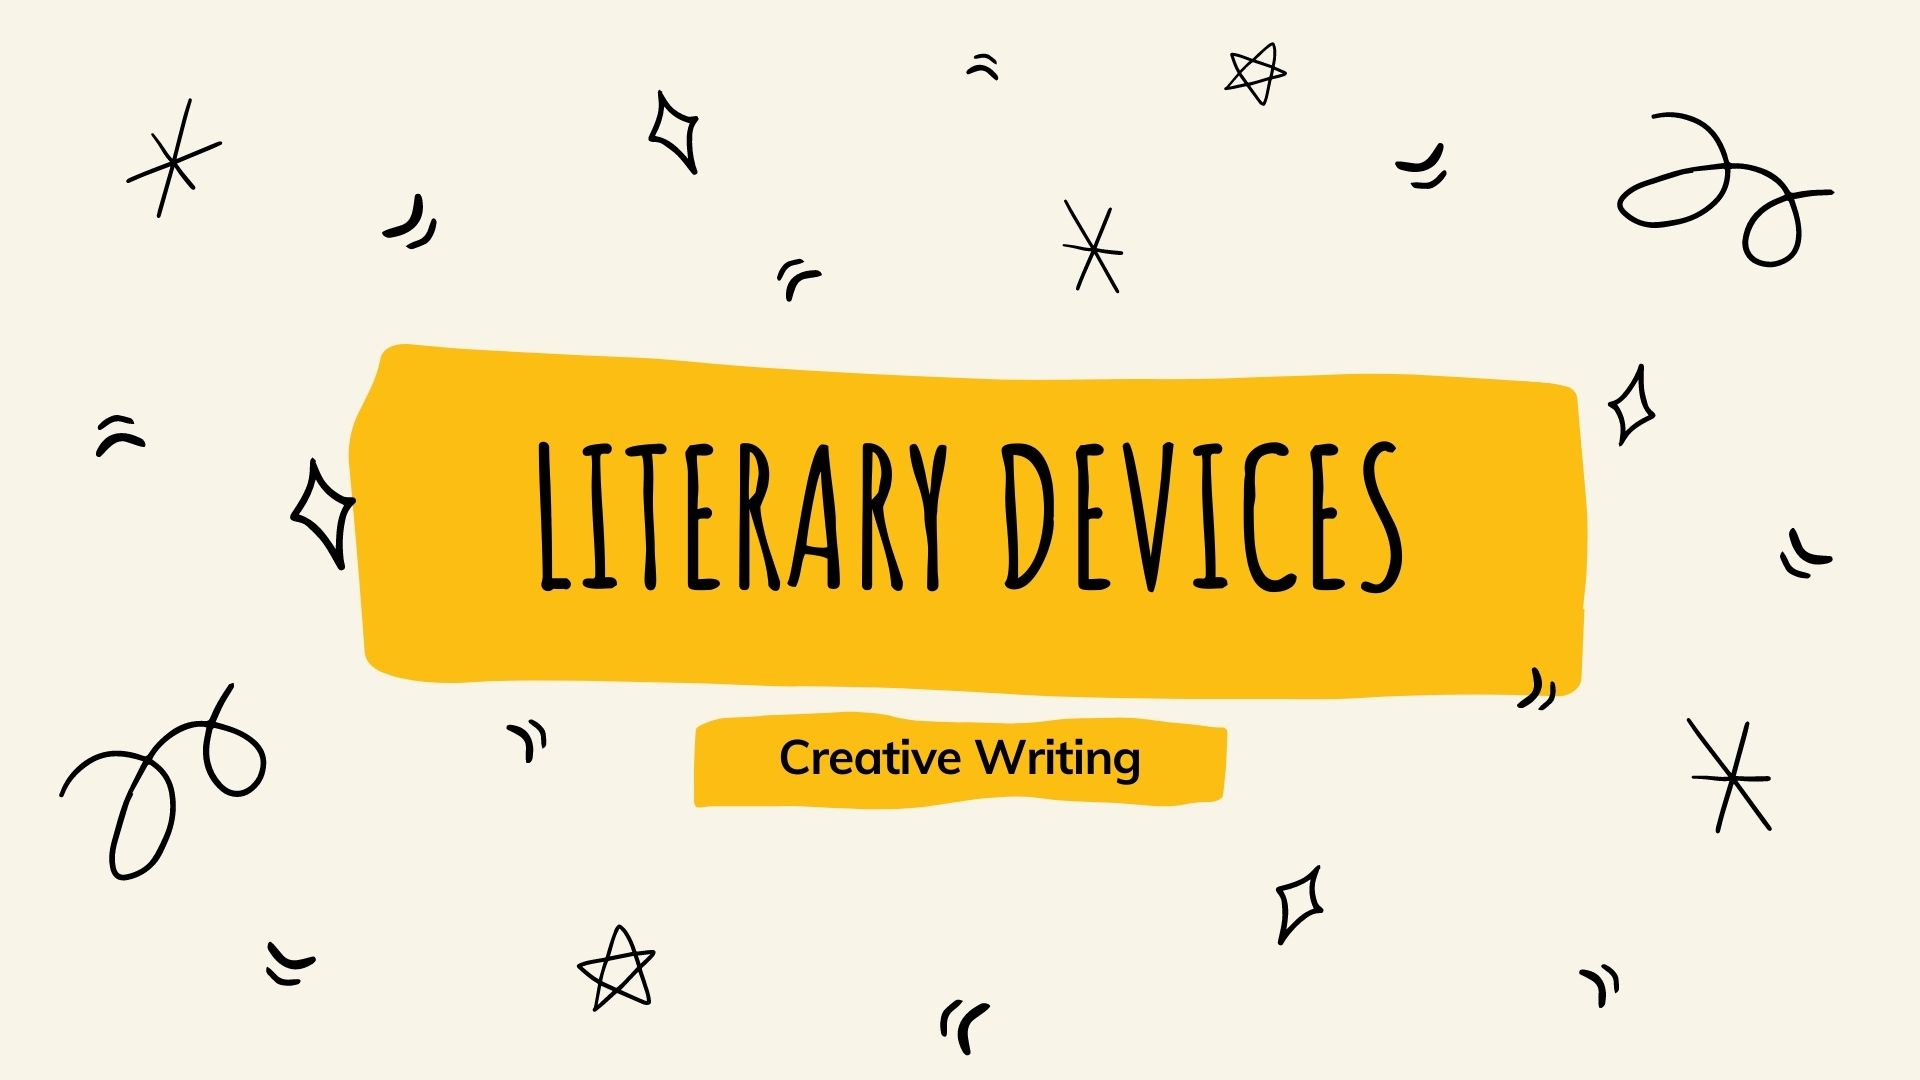 Creative writing Literary devices and the 10 most commonly used literary devices